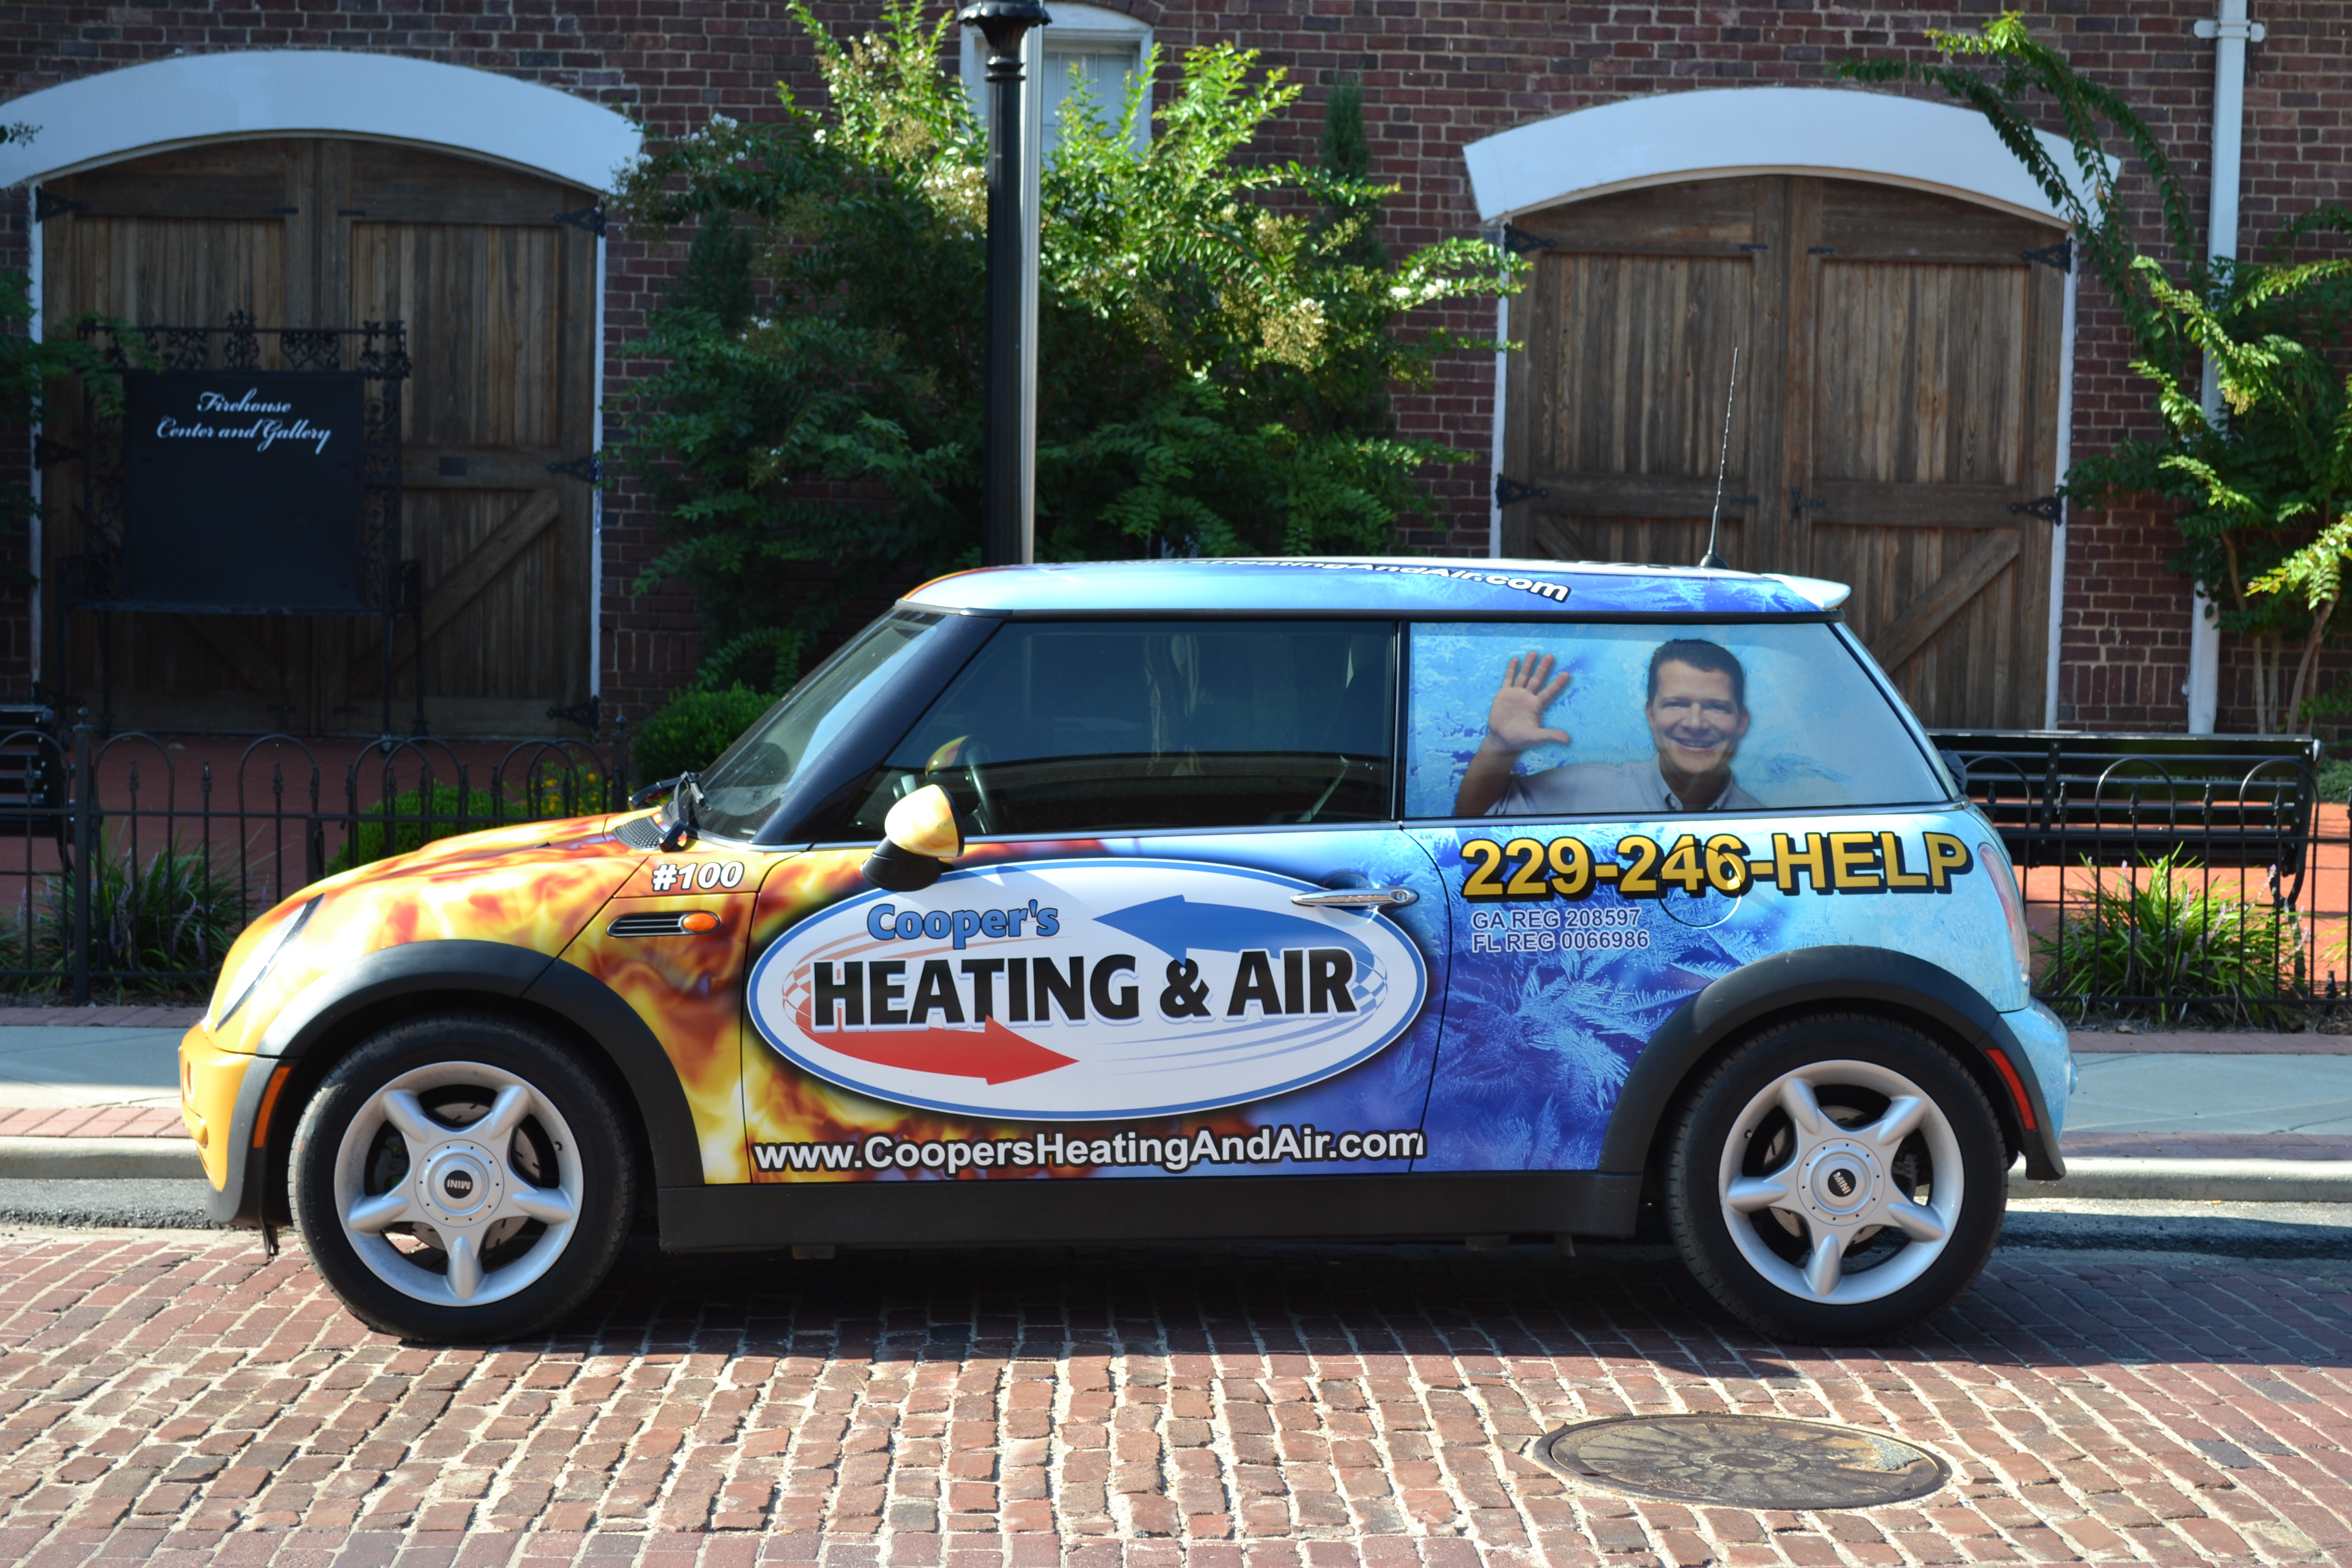 Logo Services Products Air Conditioning Repair Service Hvac Contractor Heating Filter Supplier A C Installation Duct Repairs